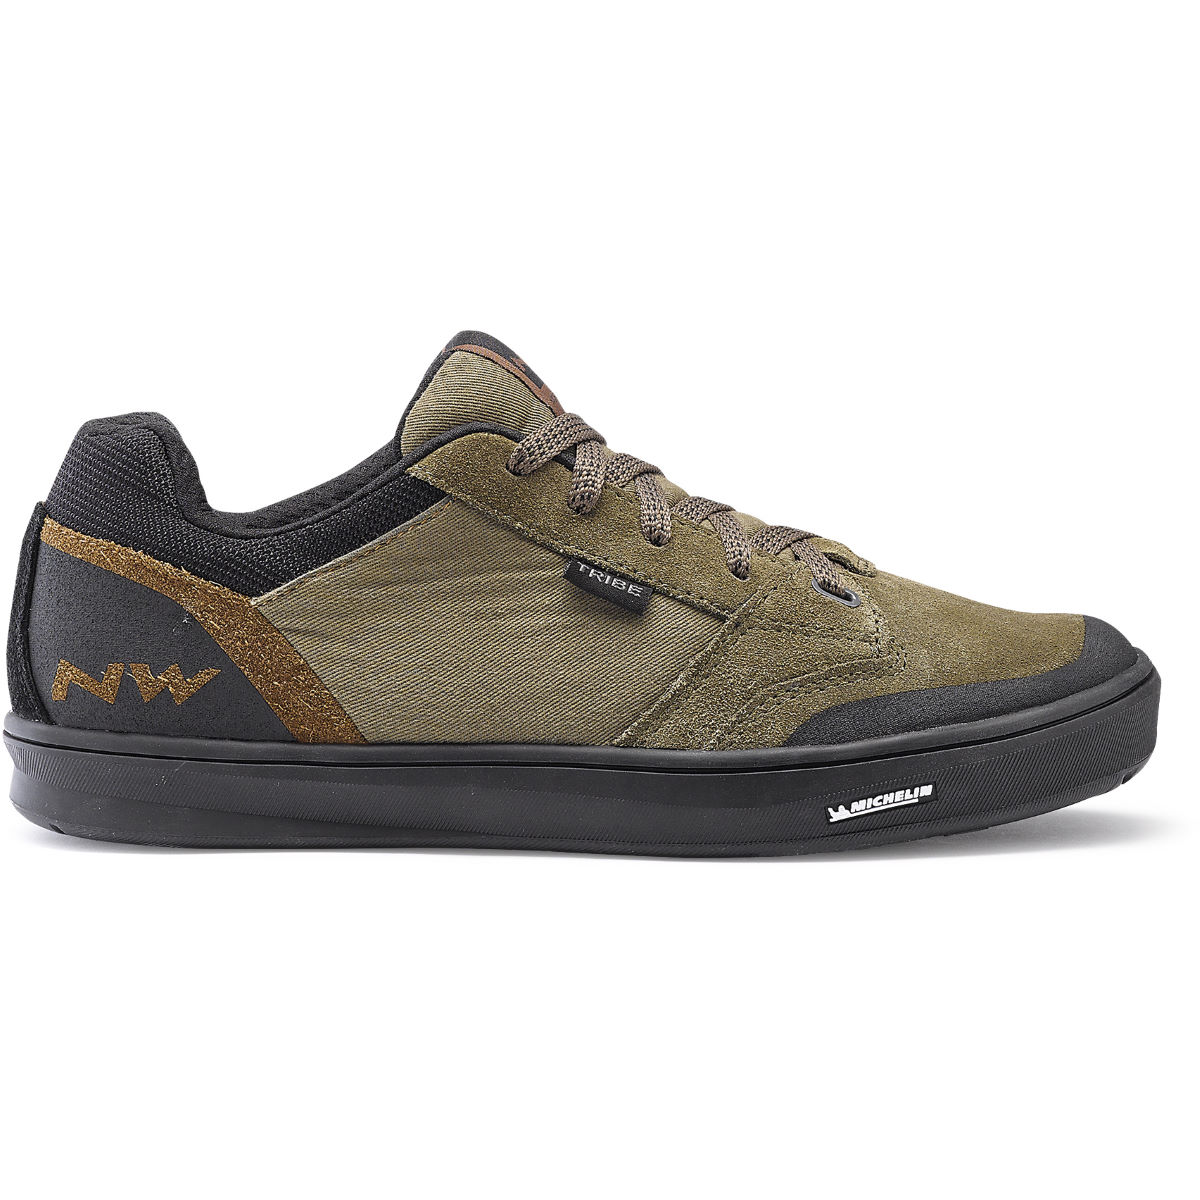 Northwave Northwave Tribe MTB Shoes   Cycling Shoes